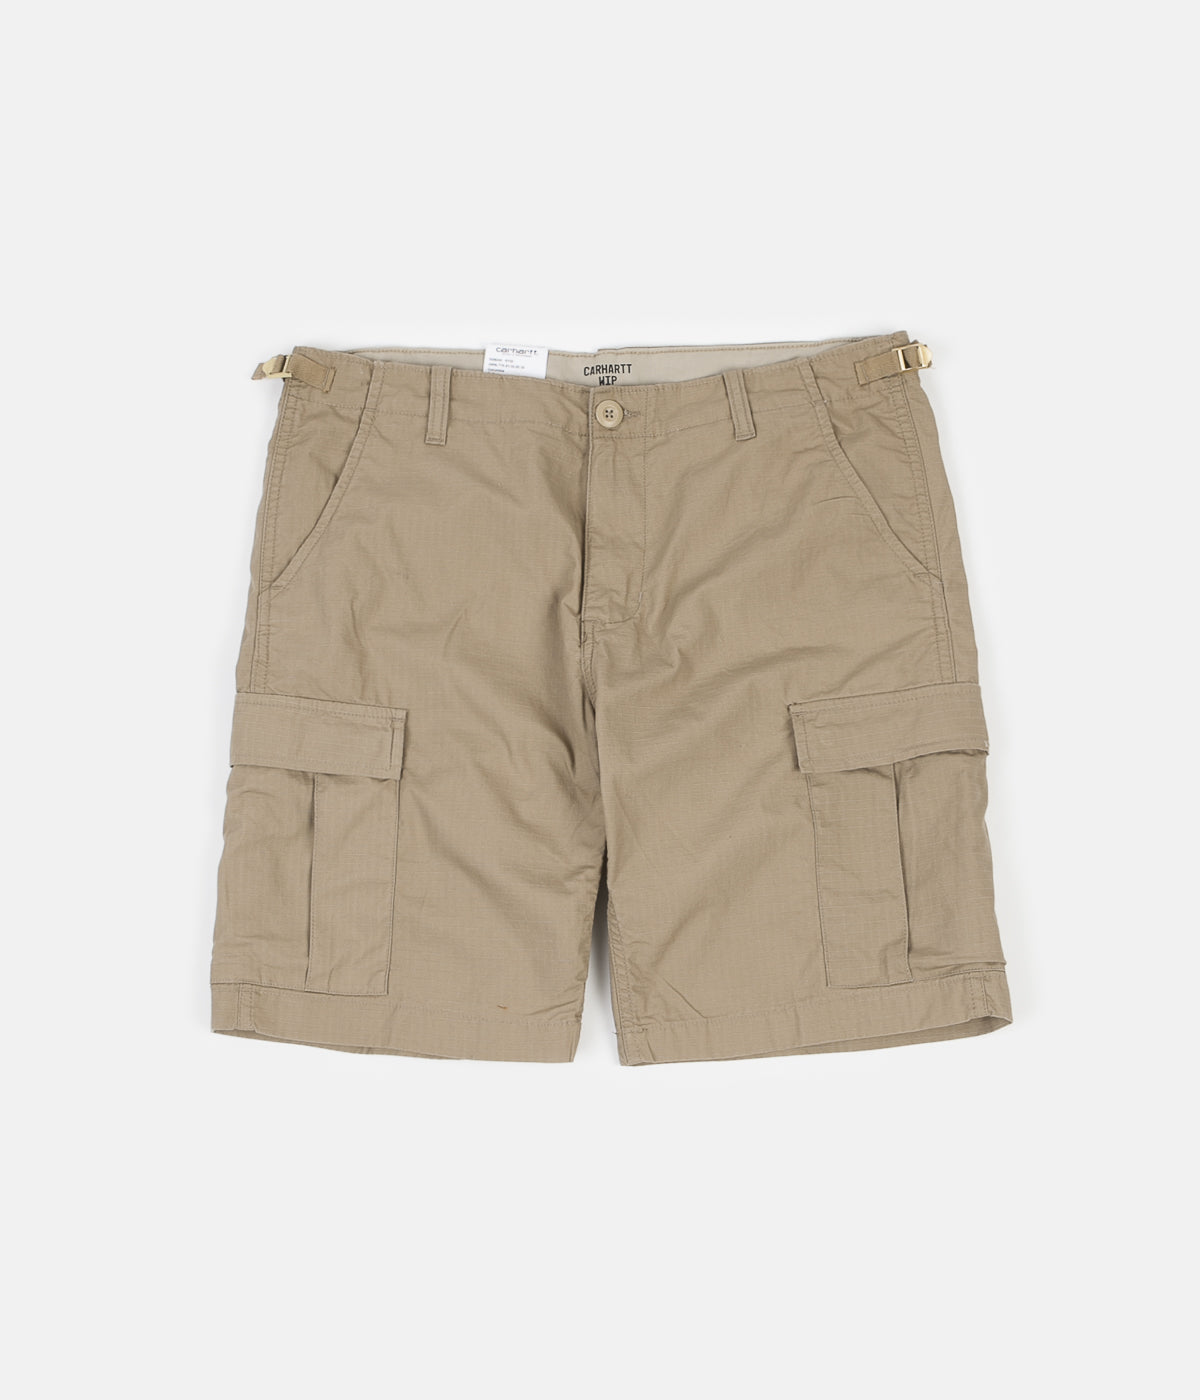 Carhartt Aviation Shorts - Leather